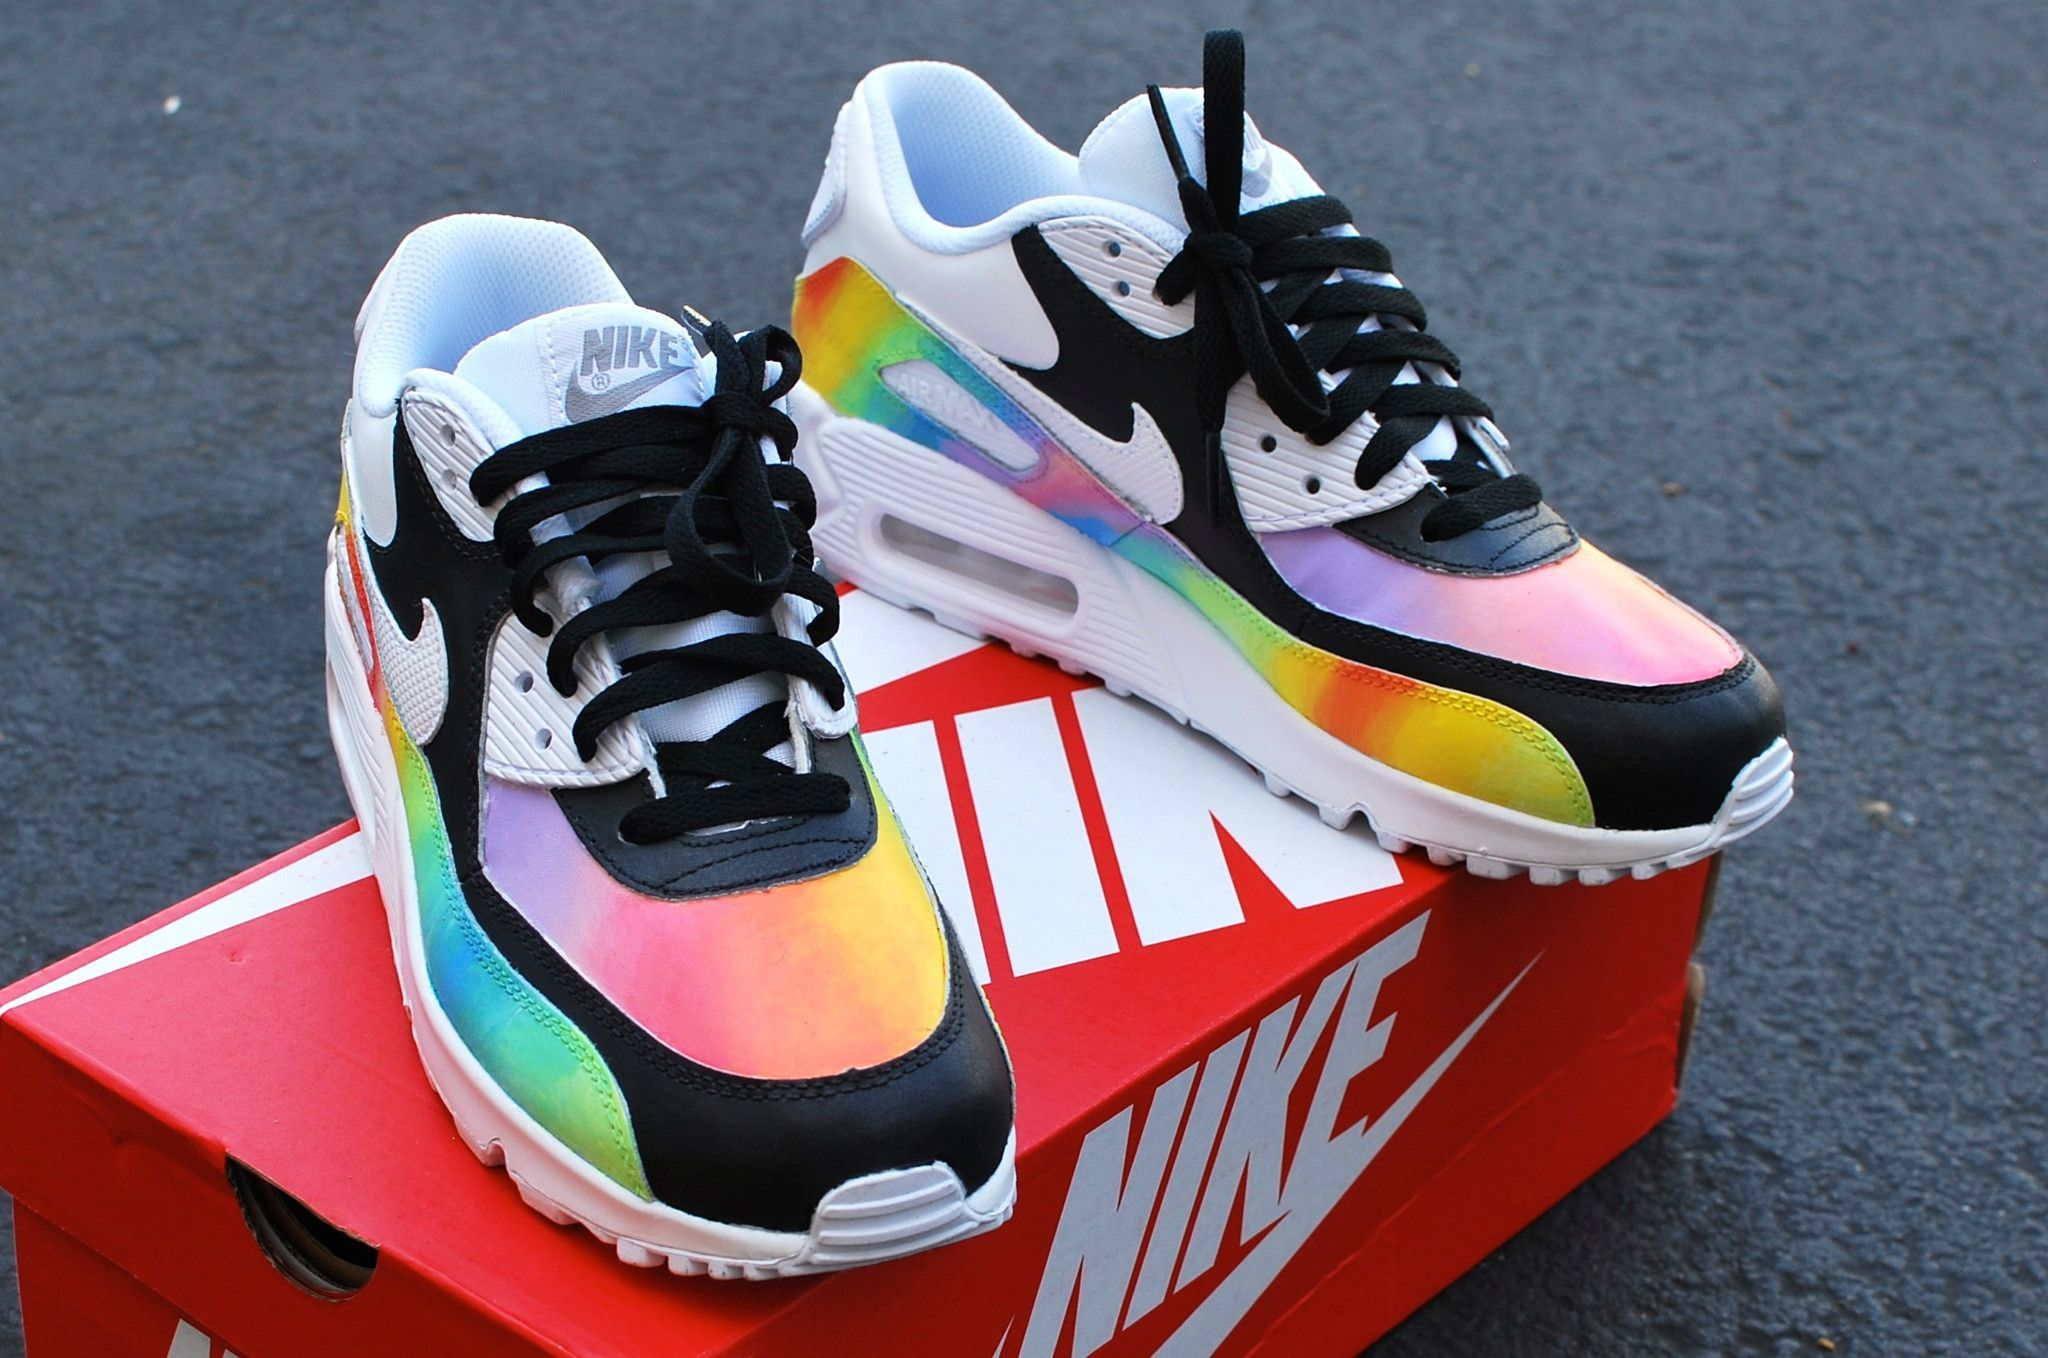 Custom Hand Painted Color Blast Nike Air Max 90 Running Shoe